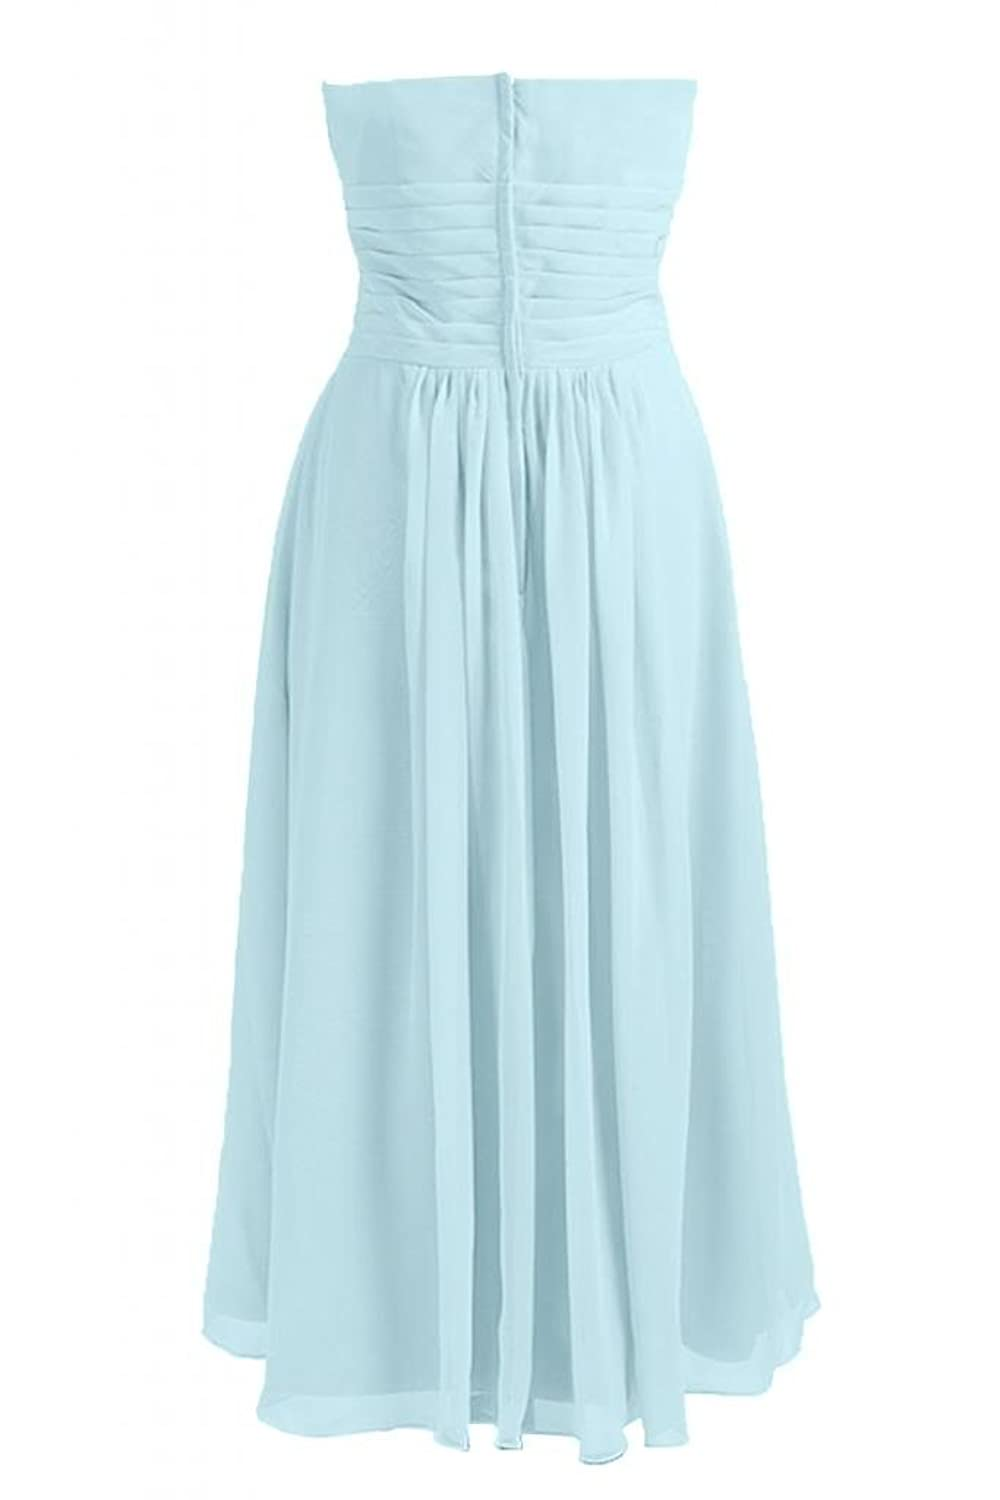 Sunvary Chic Chiffon A-Line Sweetheart Prom Party Dress Bridesmaid Dress